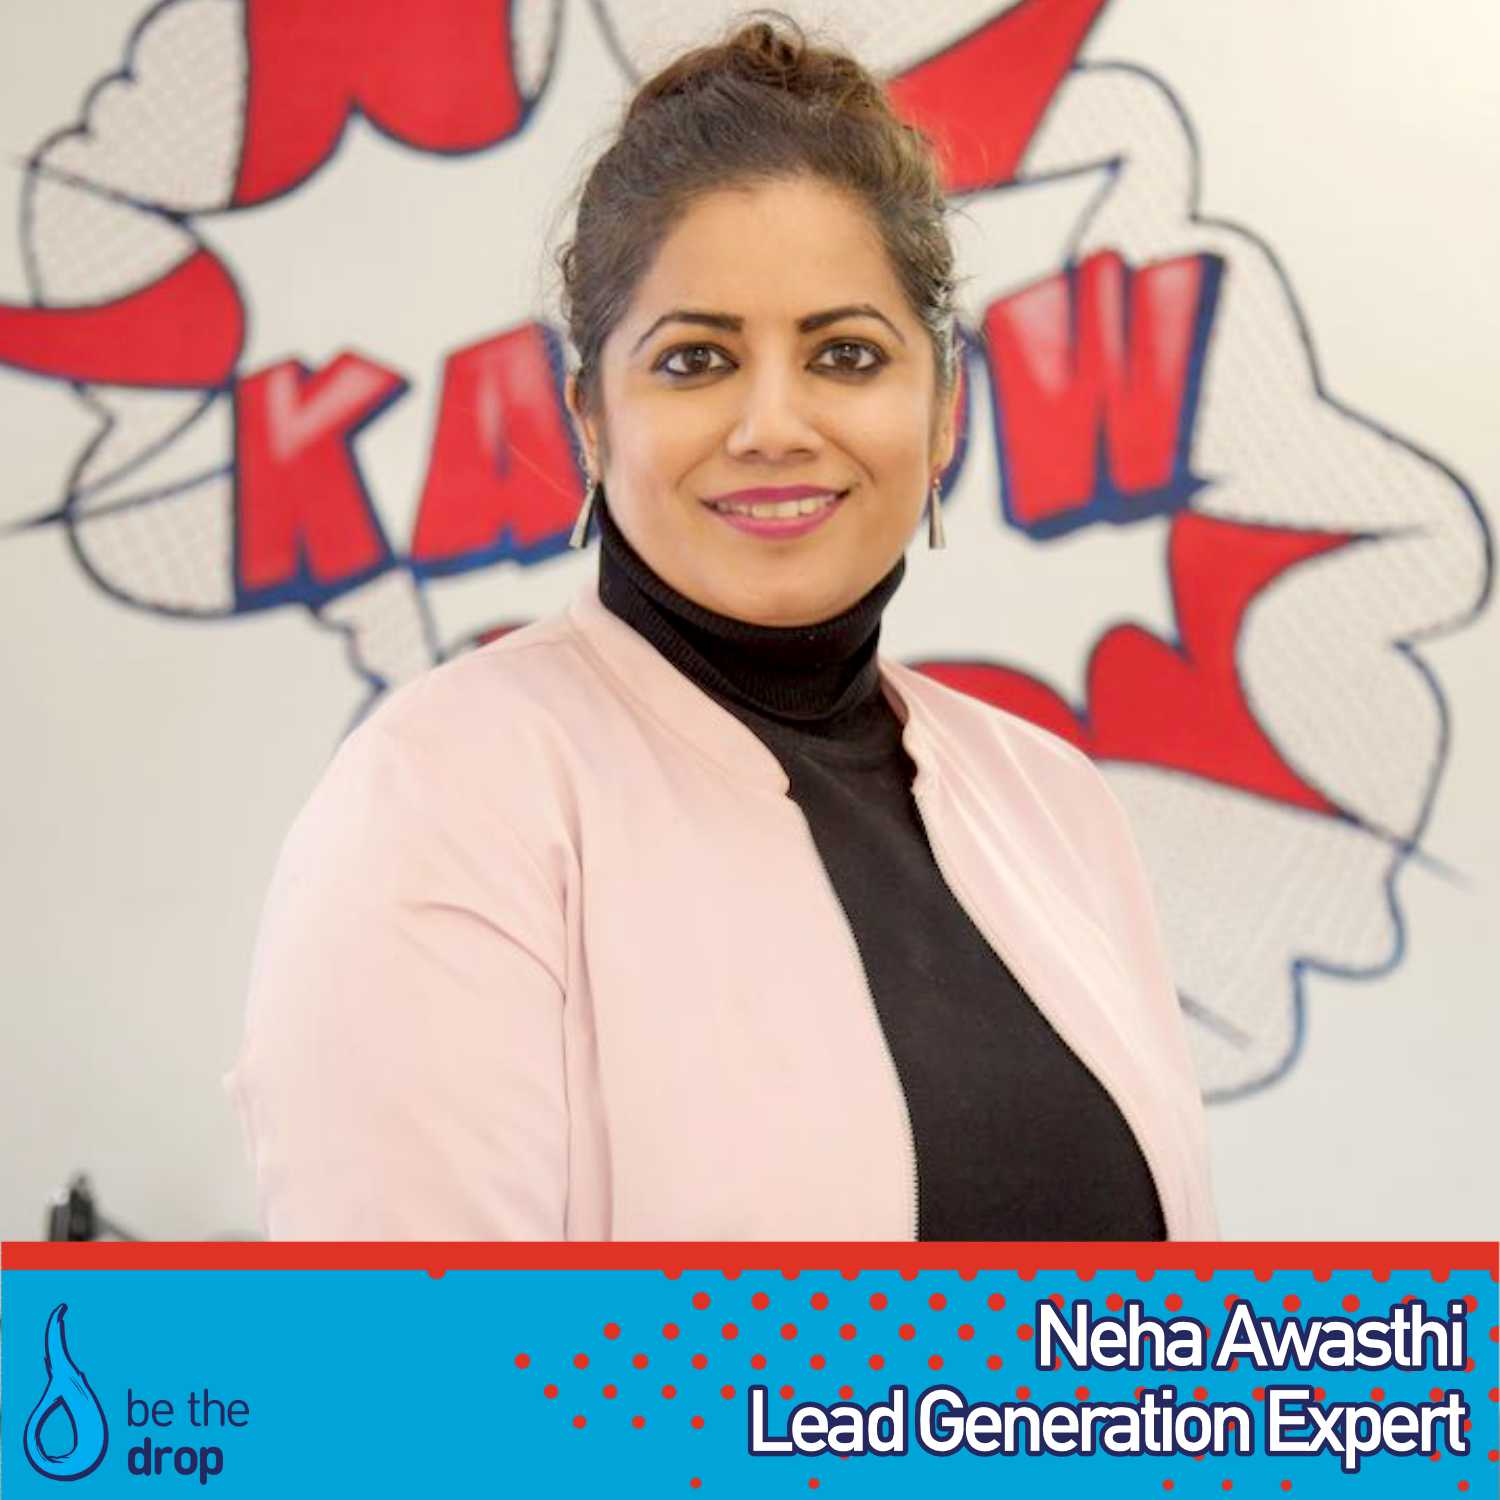 Neha Awashti shares her lead generation tips on be the drop podcast